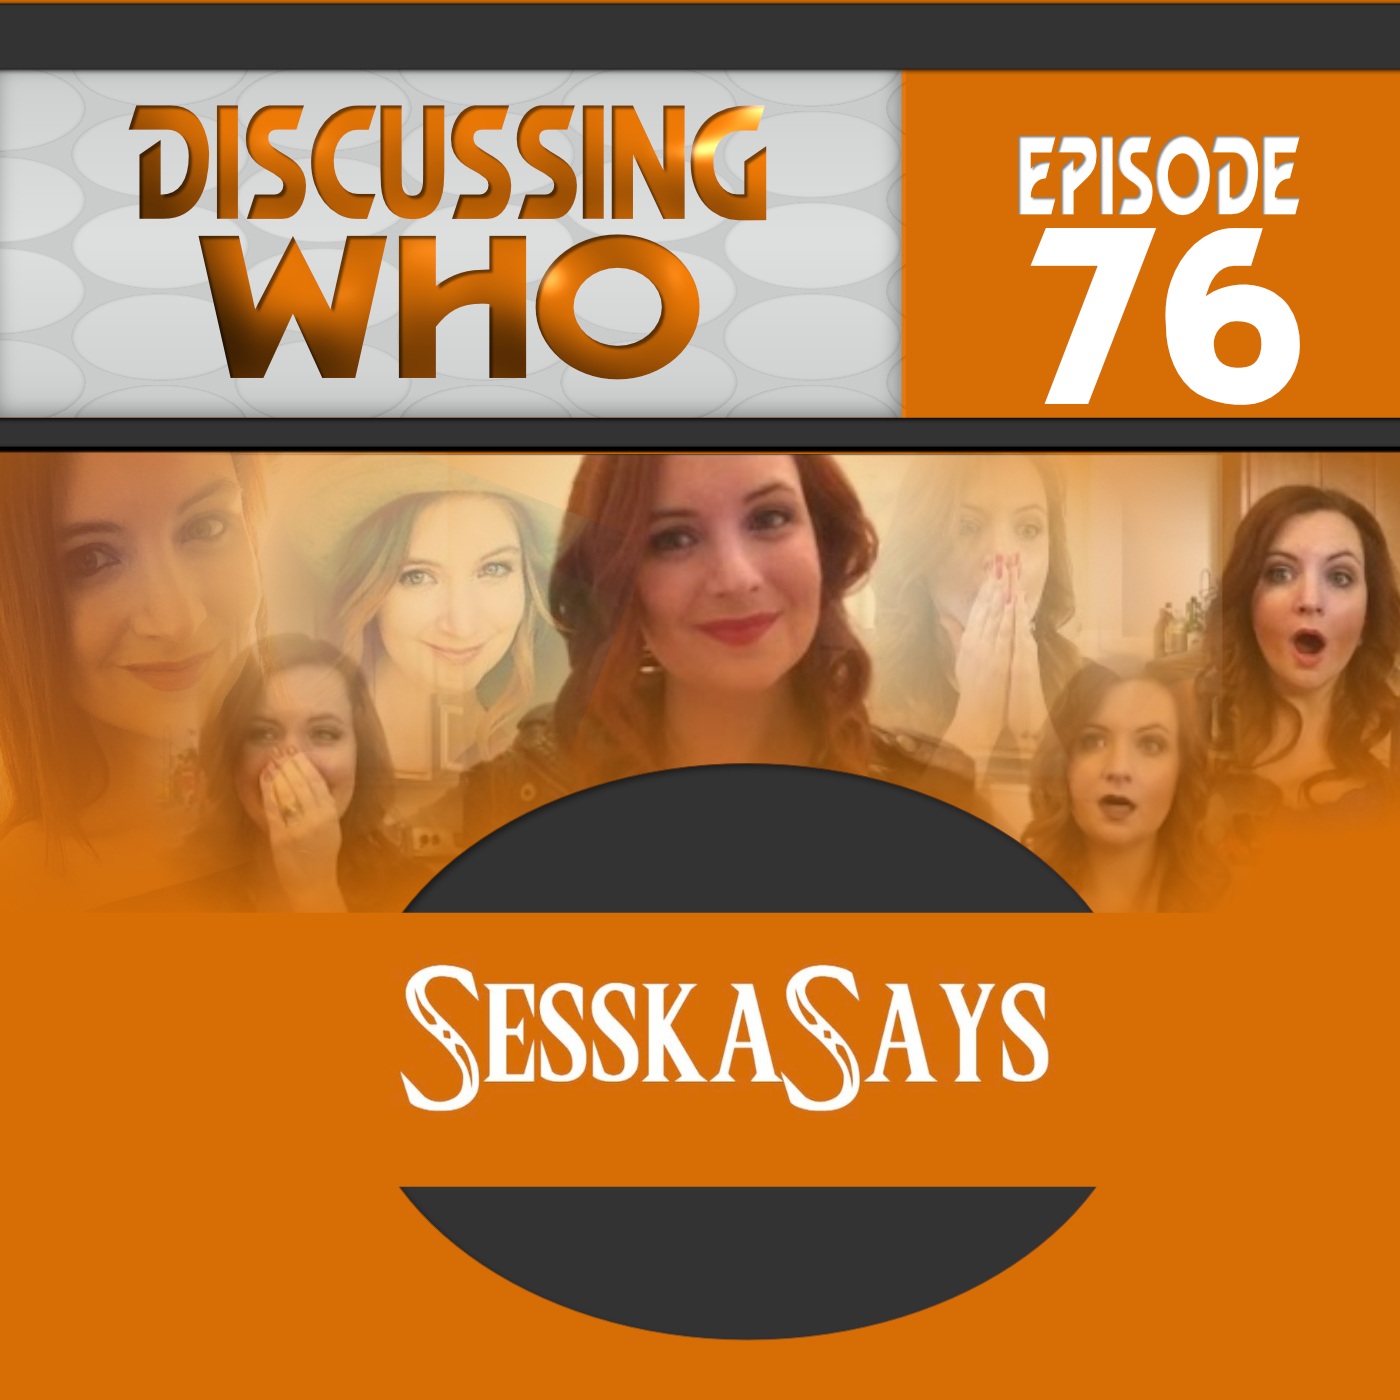 Episode 76: Interview with Jessica from the SesskaSays